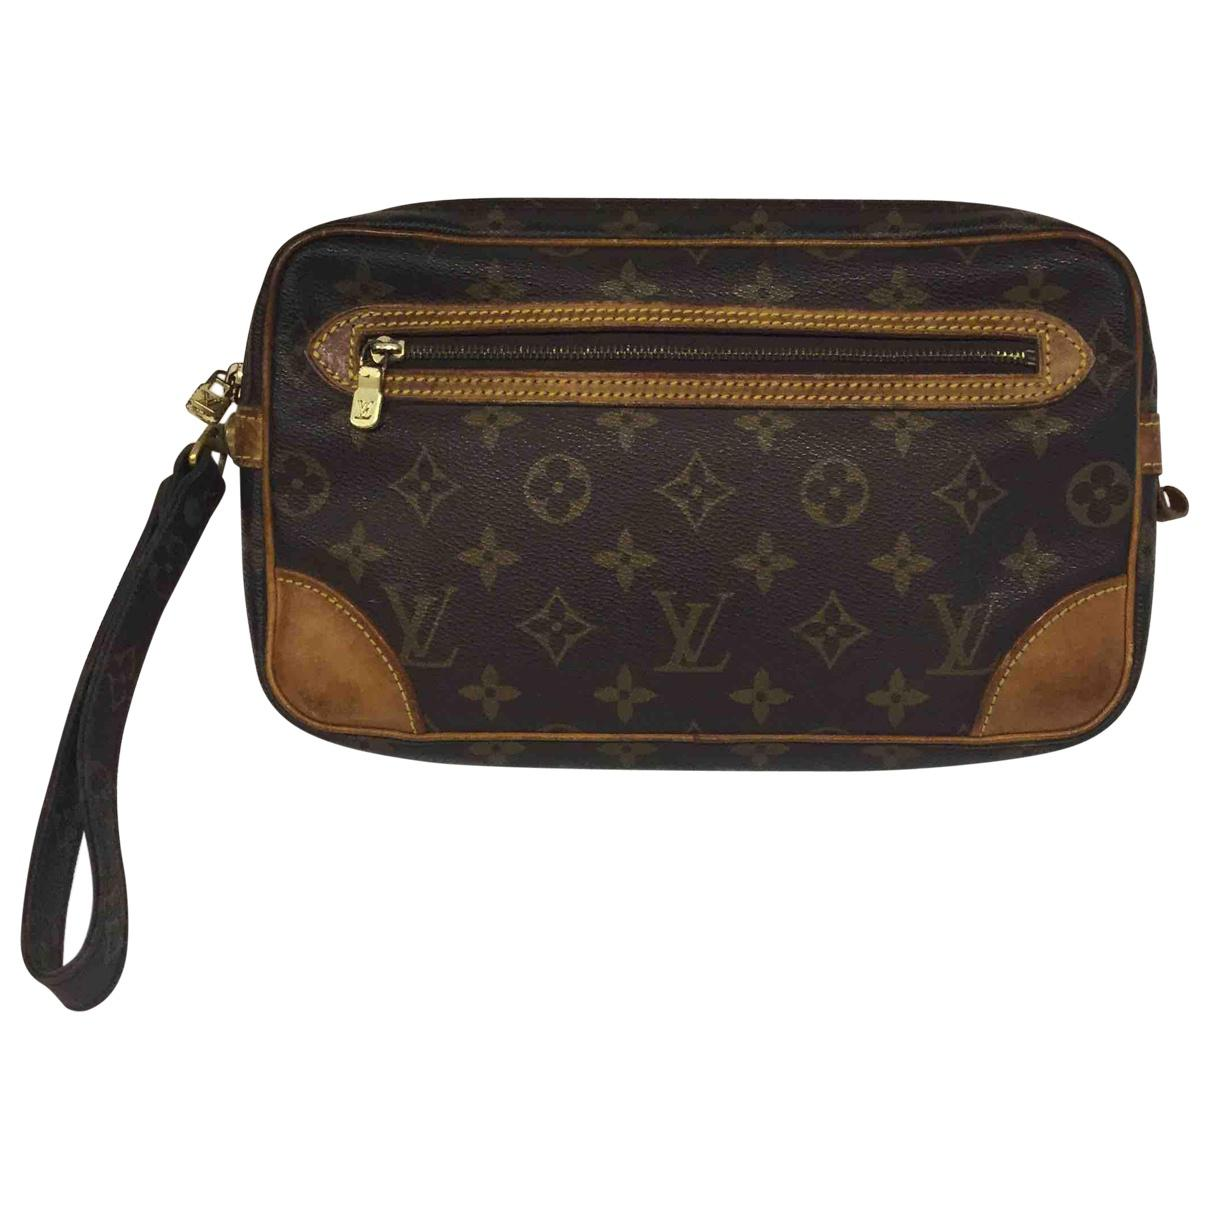 Louis Vuitton Pre-owned - Cloth clutch bag nw5jxnd